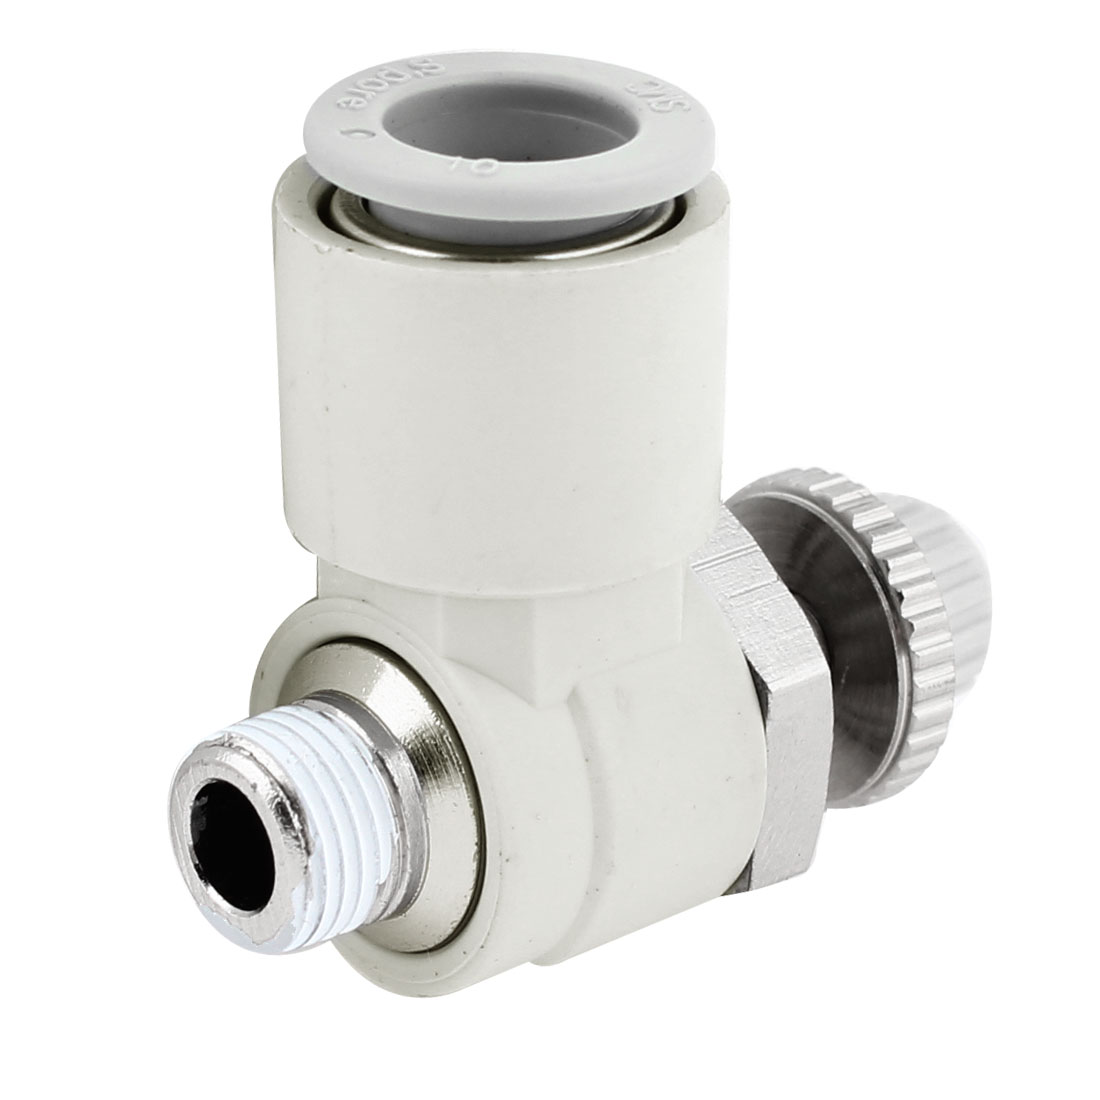 Pneumatic Air Valve Push in Connector Flow Control Fitting for 10mm Tube